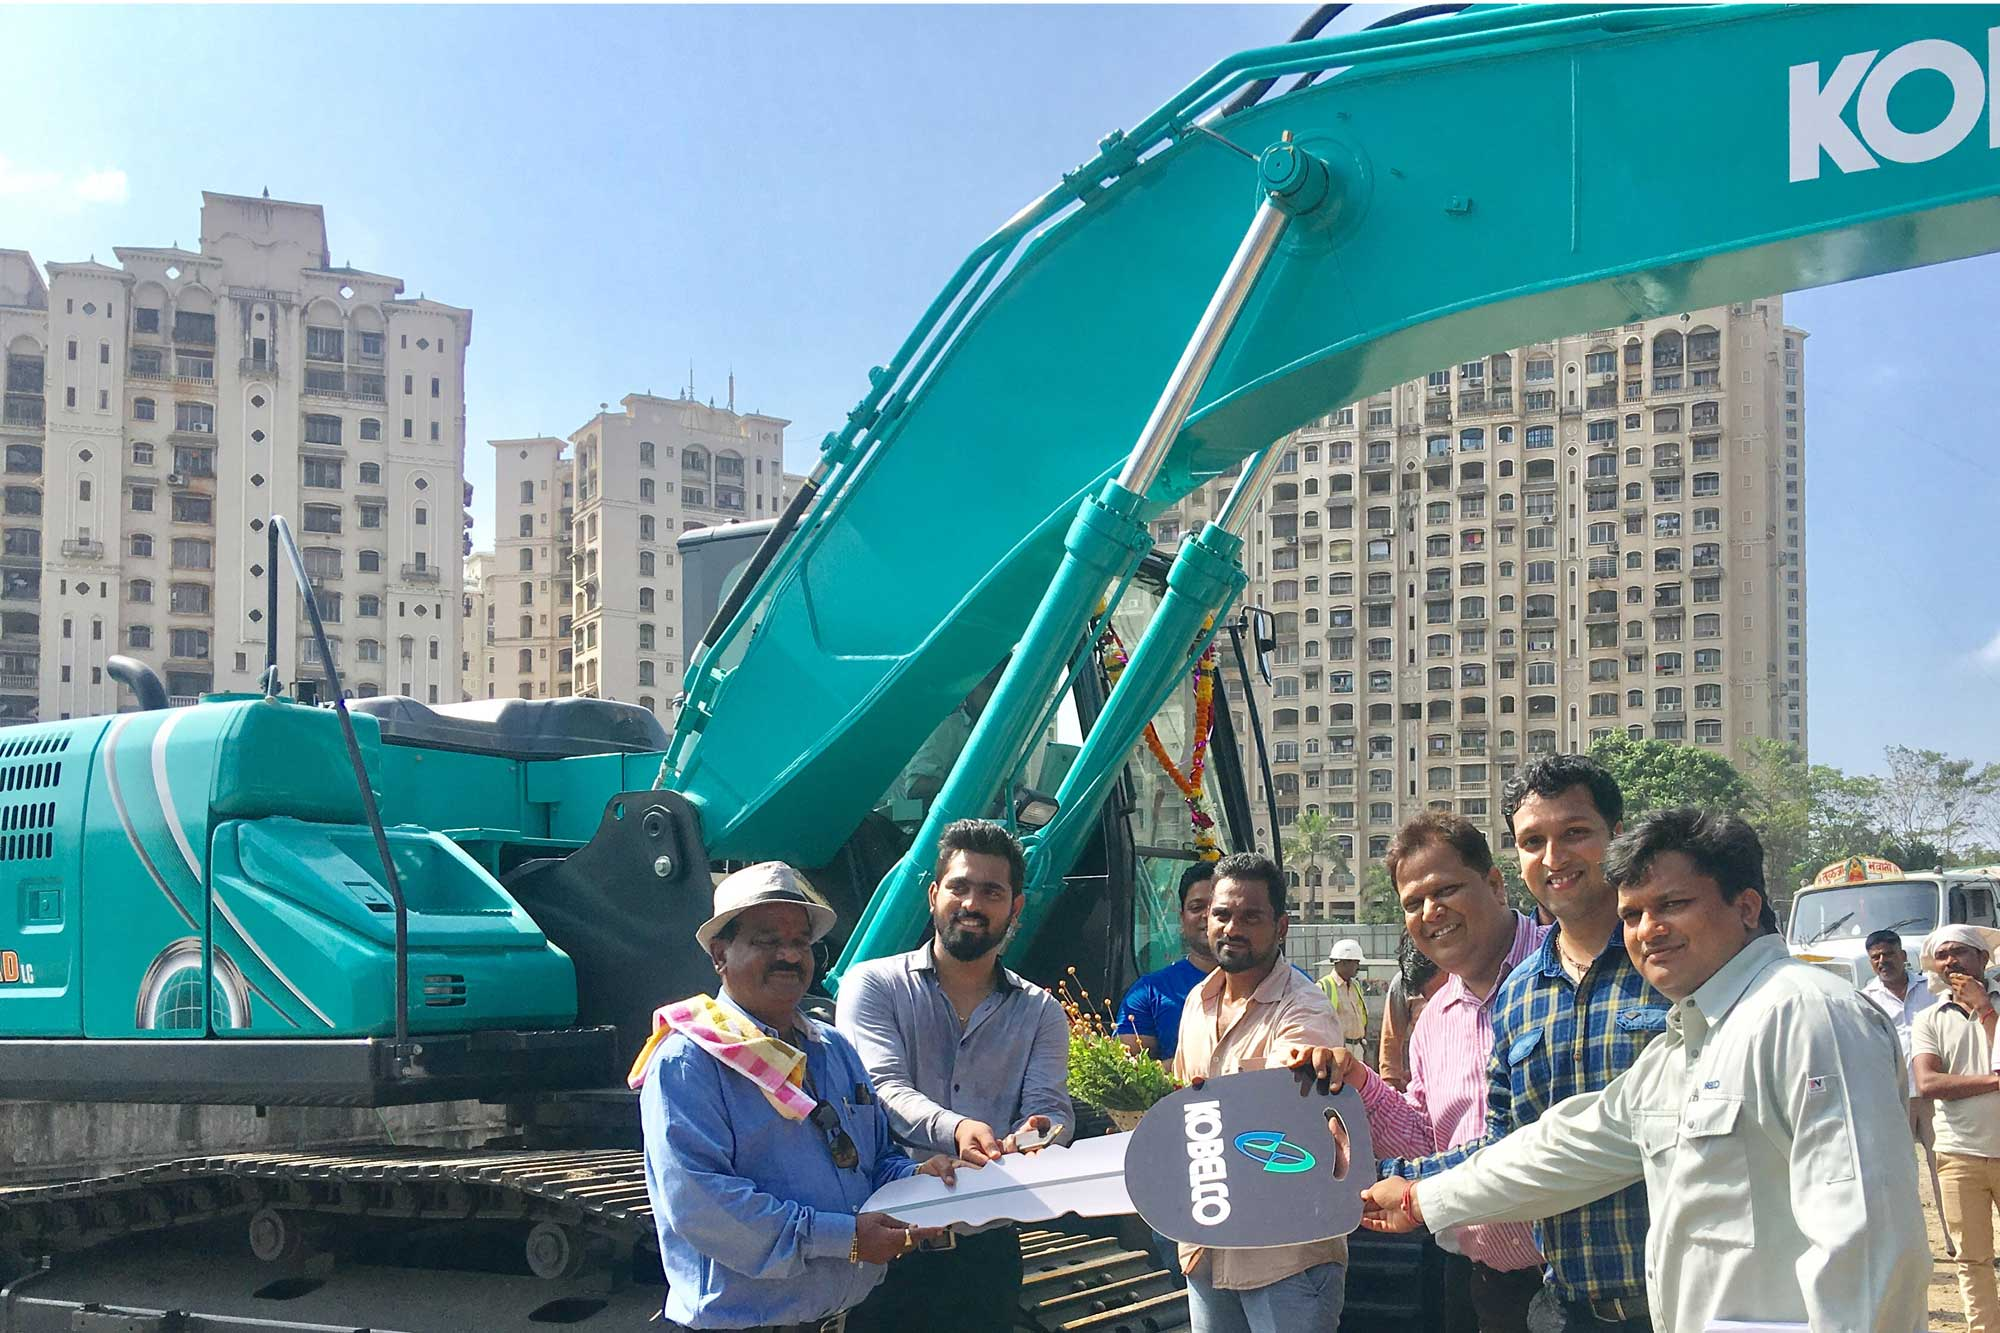 Naidu's Infracon puts its trust in Kobelco's10th generation model